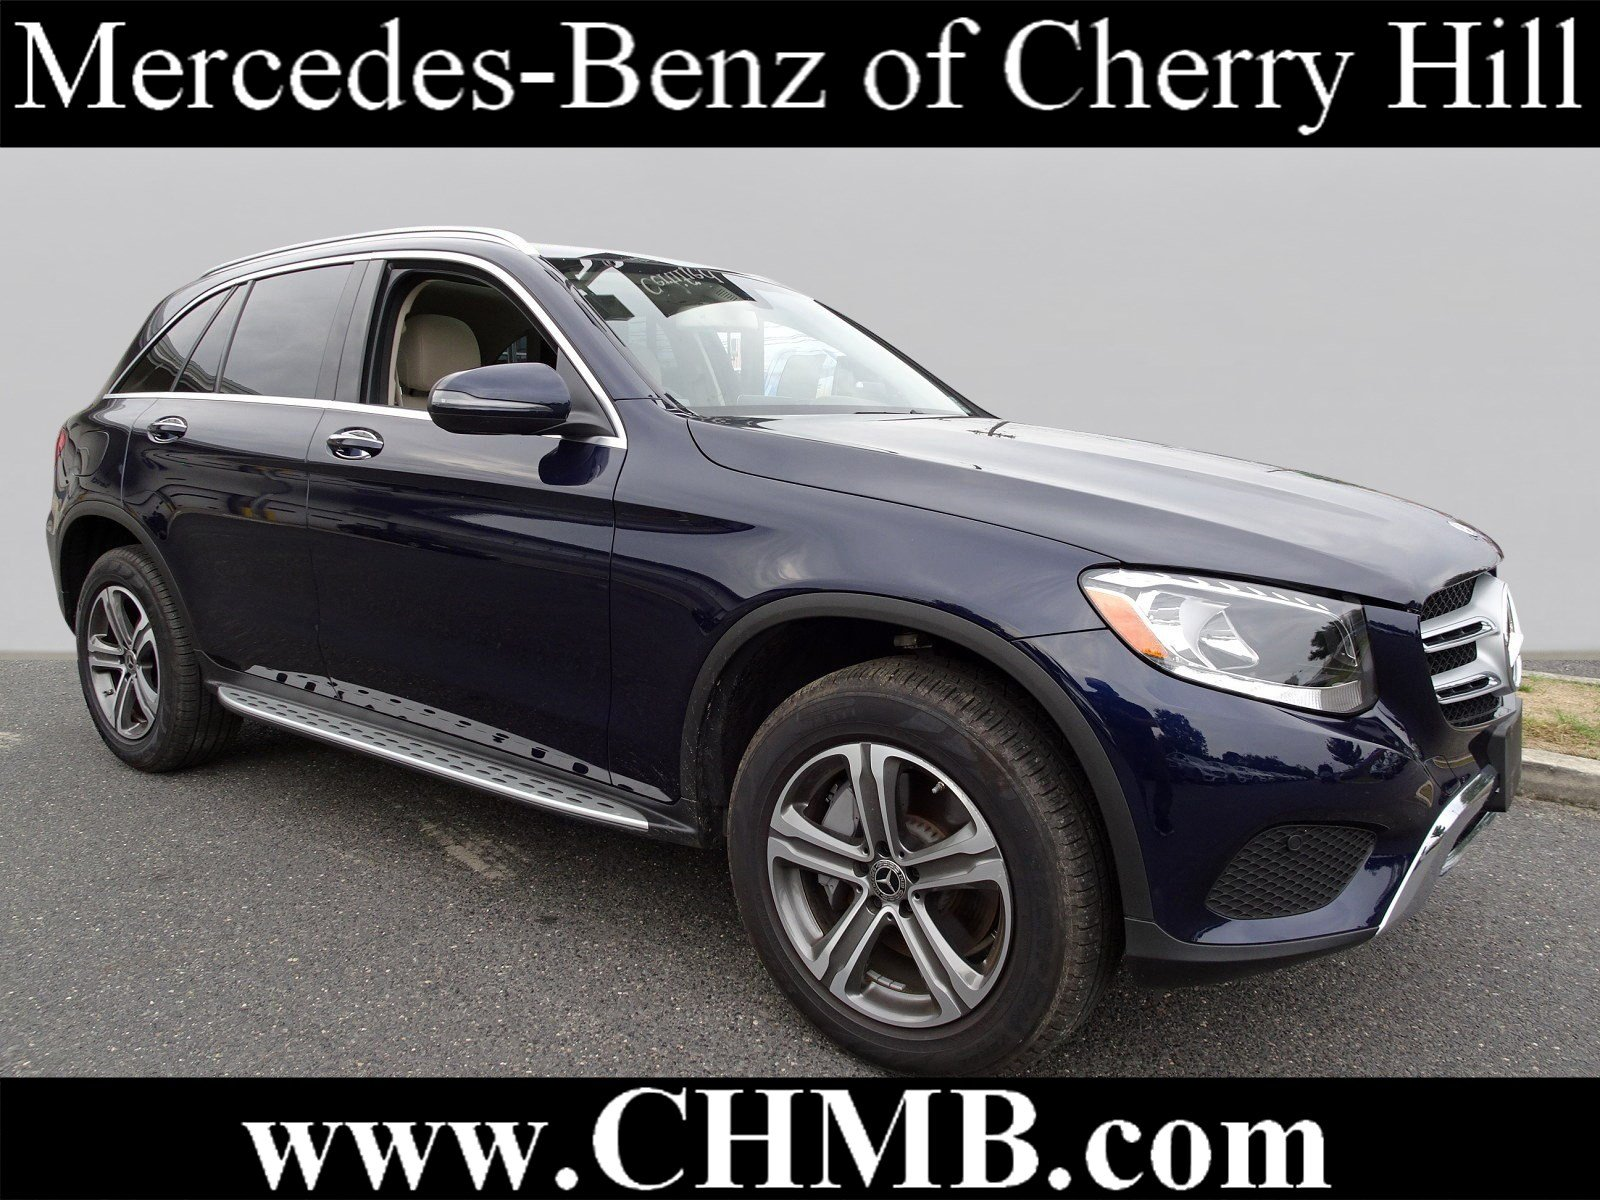 Pre Owned 2018 Mercedes Benz GLC GLC 300 SUV in Cherry Hill LM0064